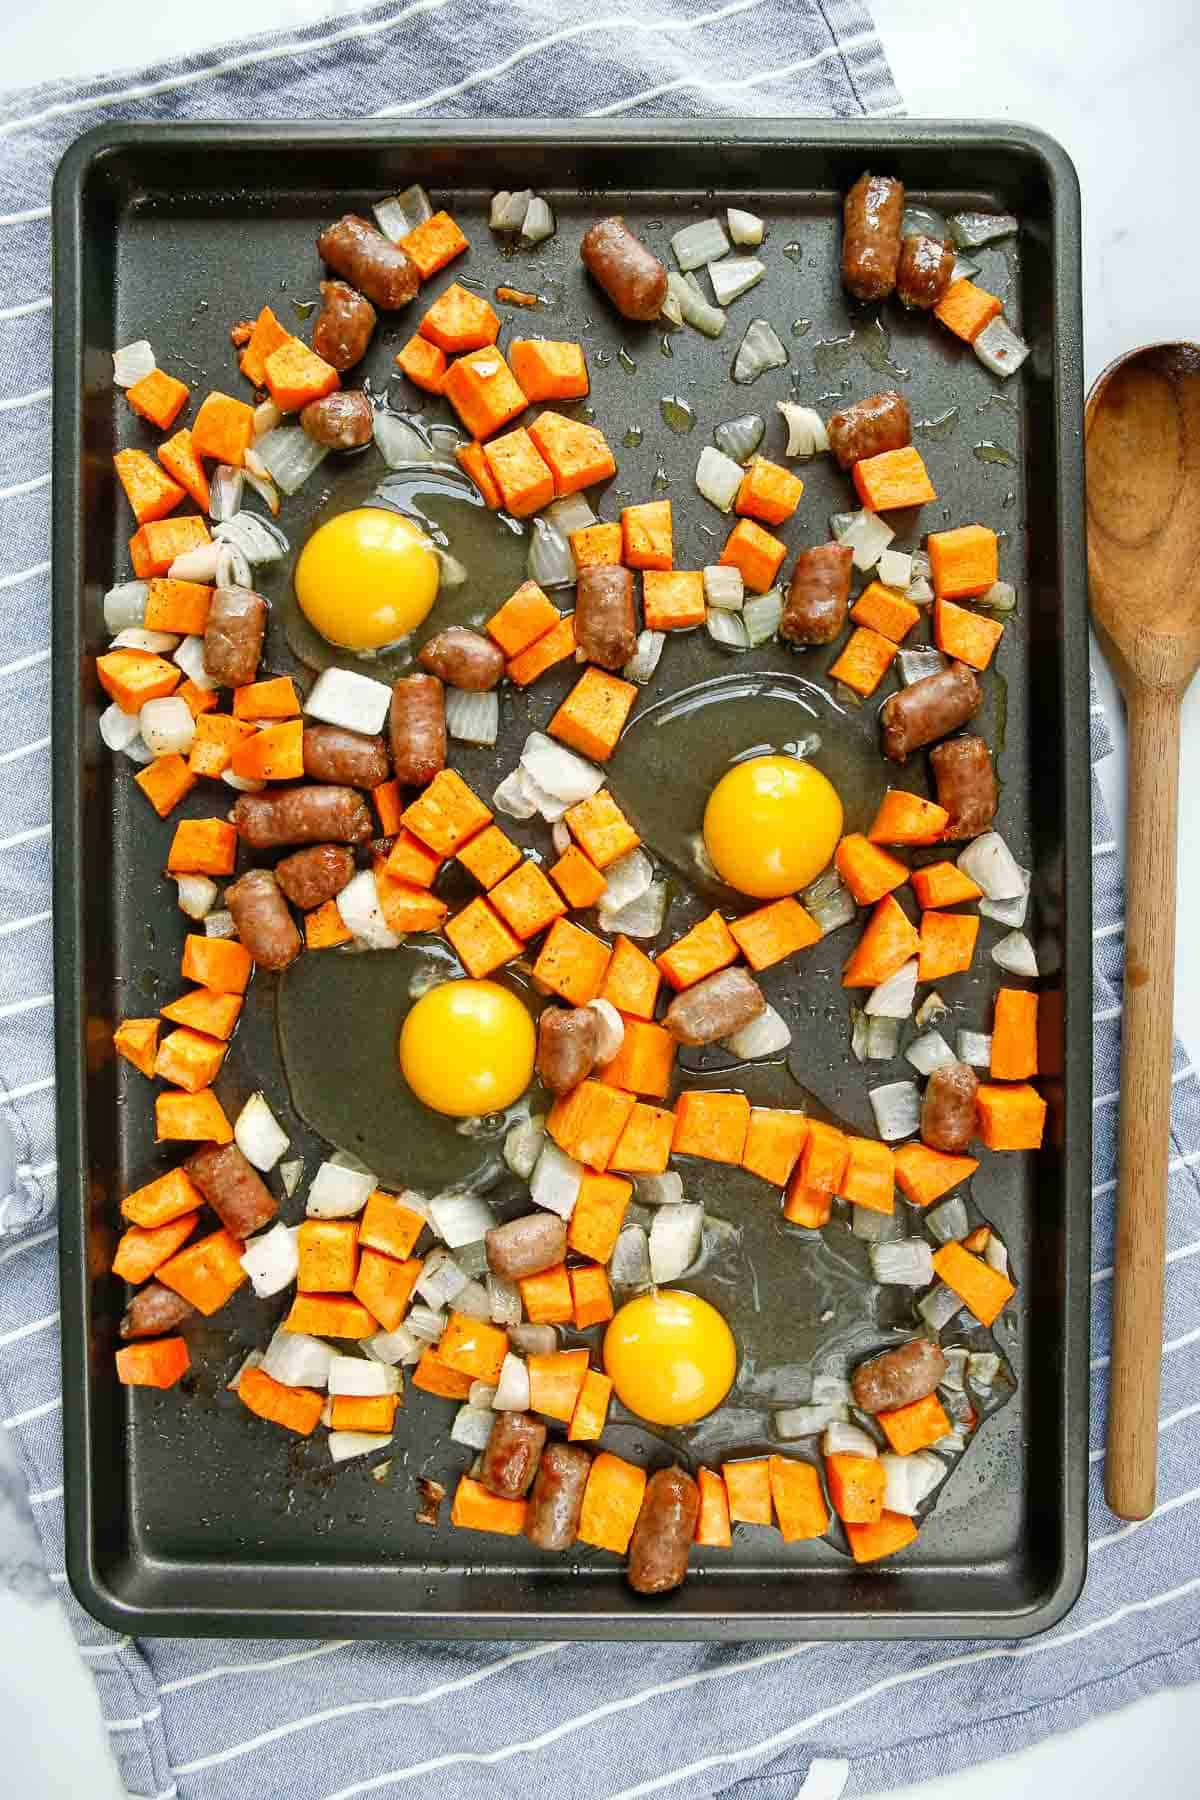 Overhead view of four uncooked eggs on a sheet pan with sweet potatoes and sausage.